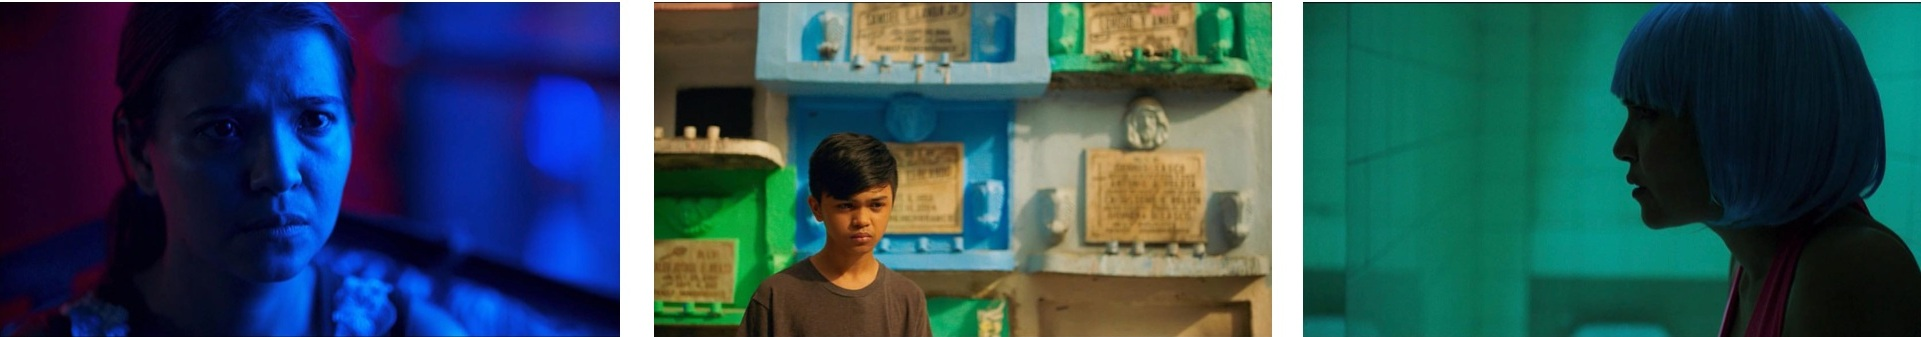 WATCH LIST (CANADA & PHILIPPINES, 2019) / DIRECTED BY BEN REKHI / PRODUCED BY REALITY ENTERTAINMENT & BRON STUDIOS